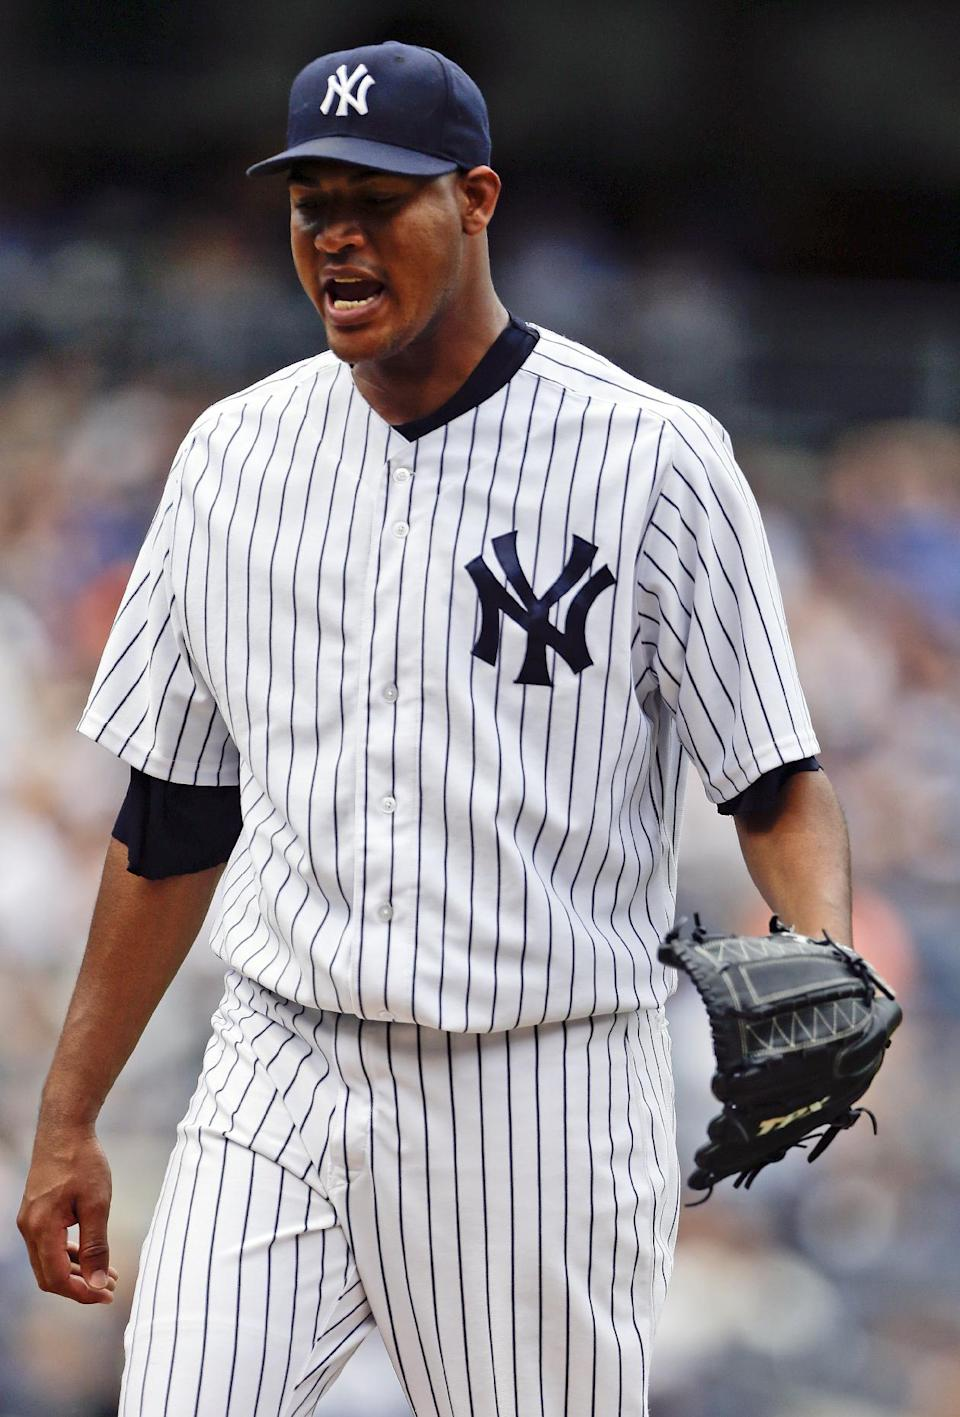 New York Yankees starting pitcher Ivan Nova reacts as he leaves the field during the sixth inning of a baseball game against the Tampa Bay Rays Saturday, July 27, 2013, in New York. The Rays won the game 1-0. (AP Photo/Frank Franklin II)